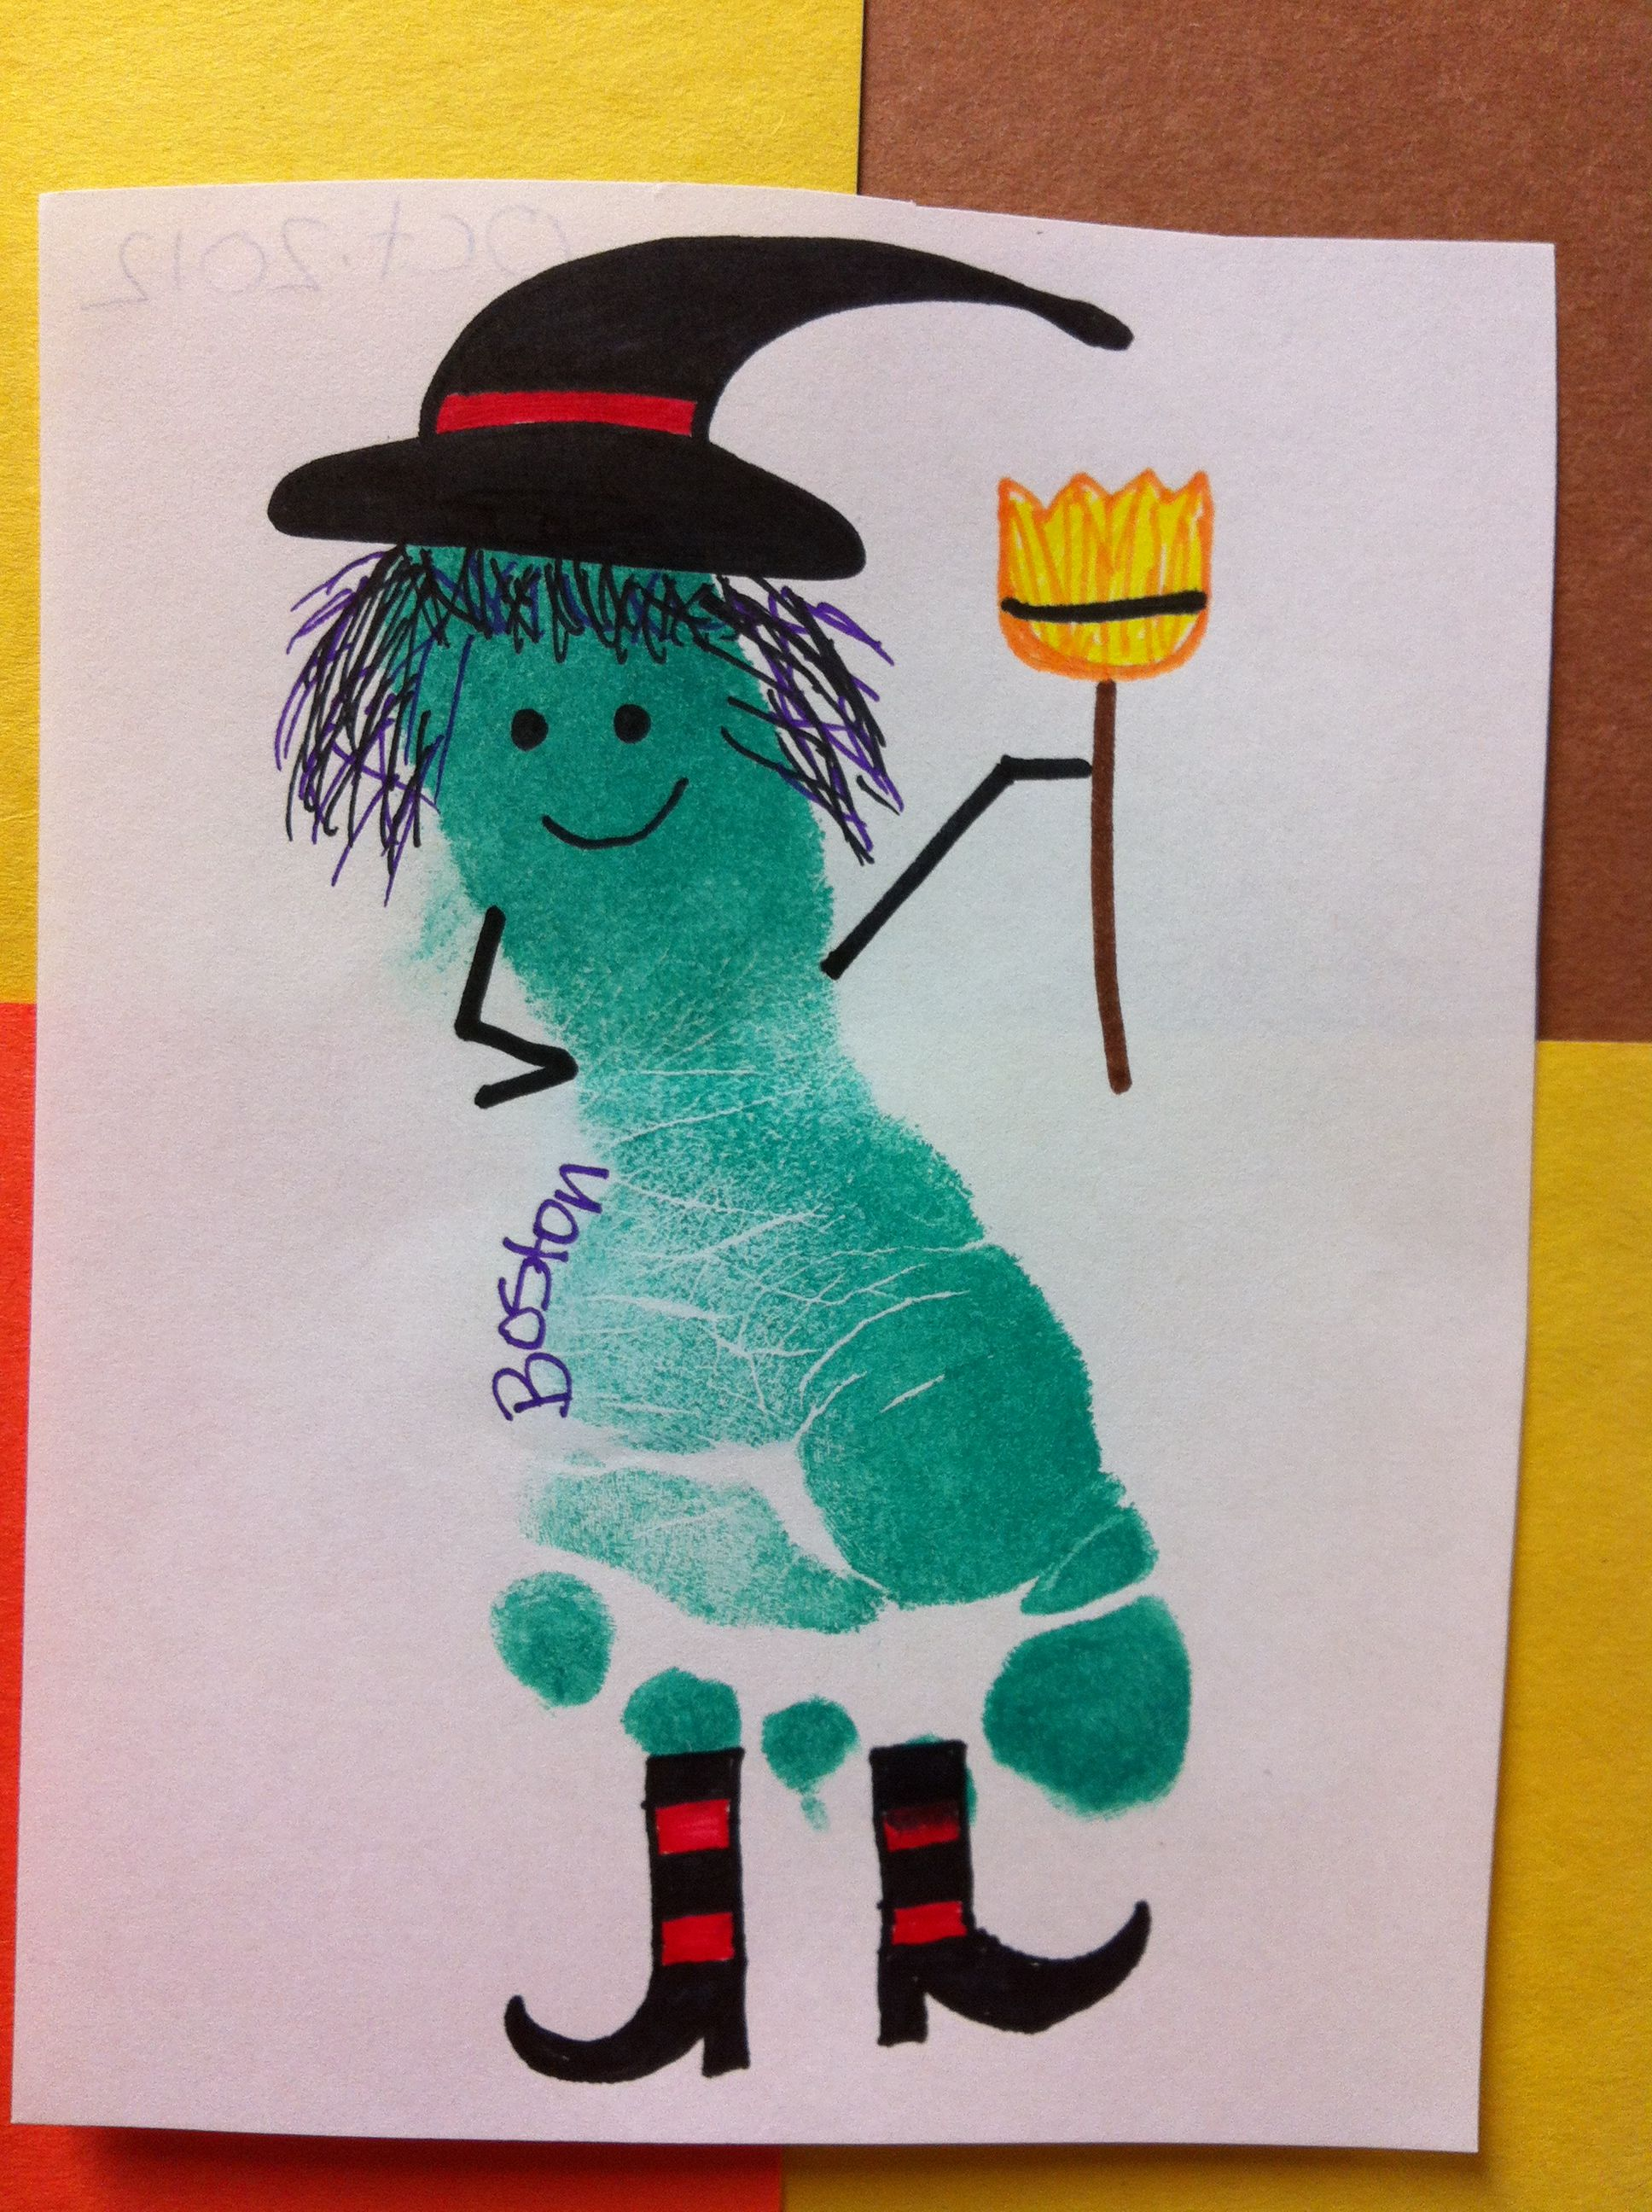 Footprint Witch Cute For Halloween Art For A Daycare Or